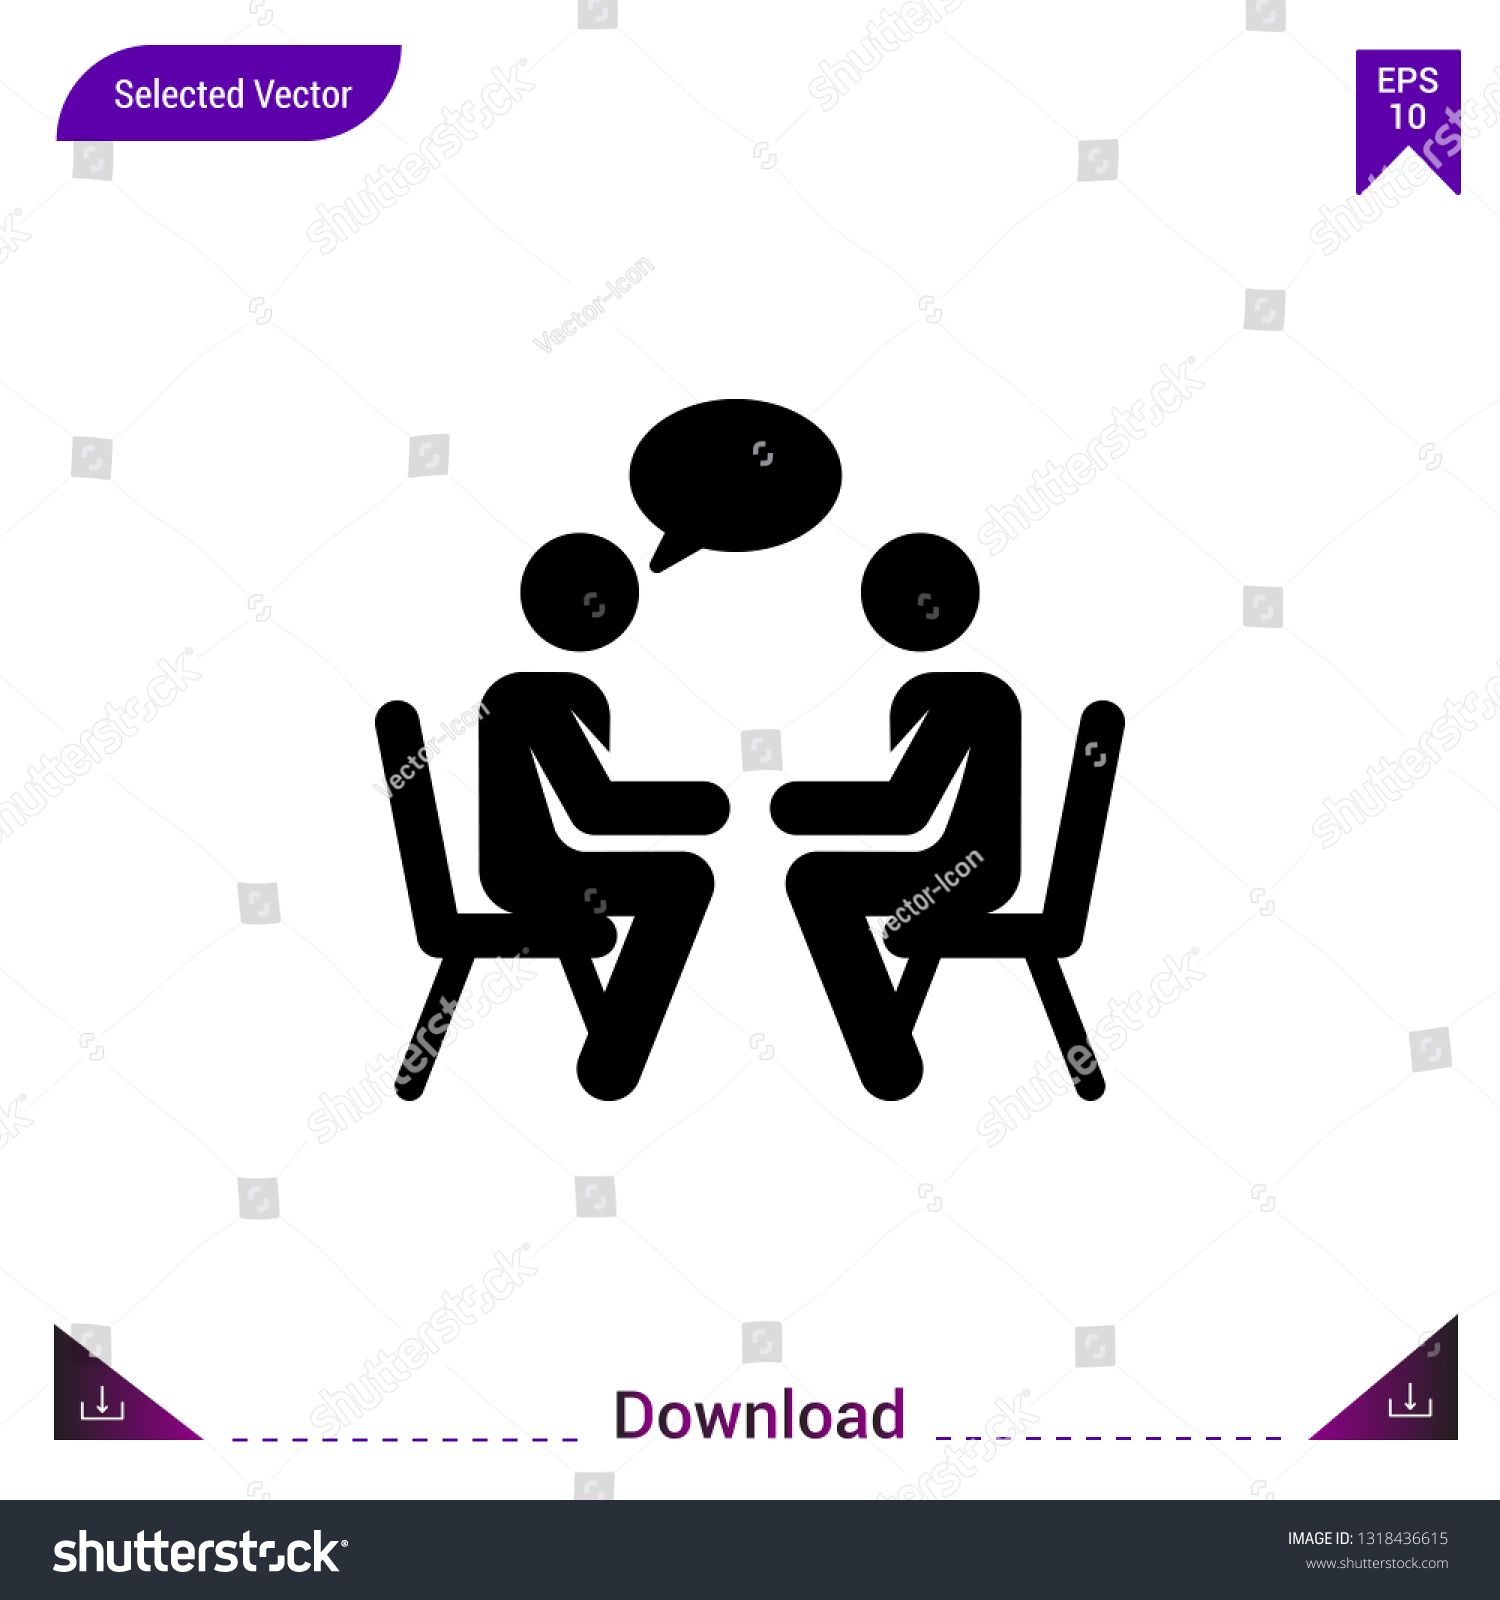 Black talking icon vector. Best modern , simple, isolated